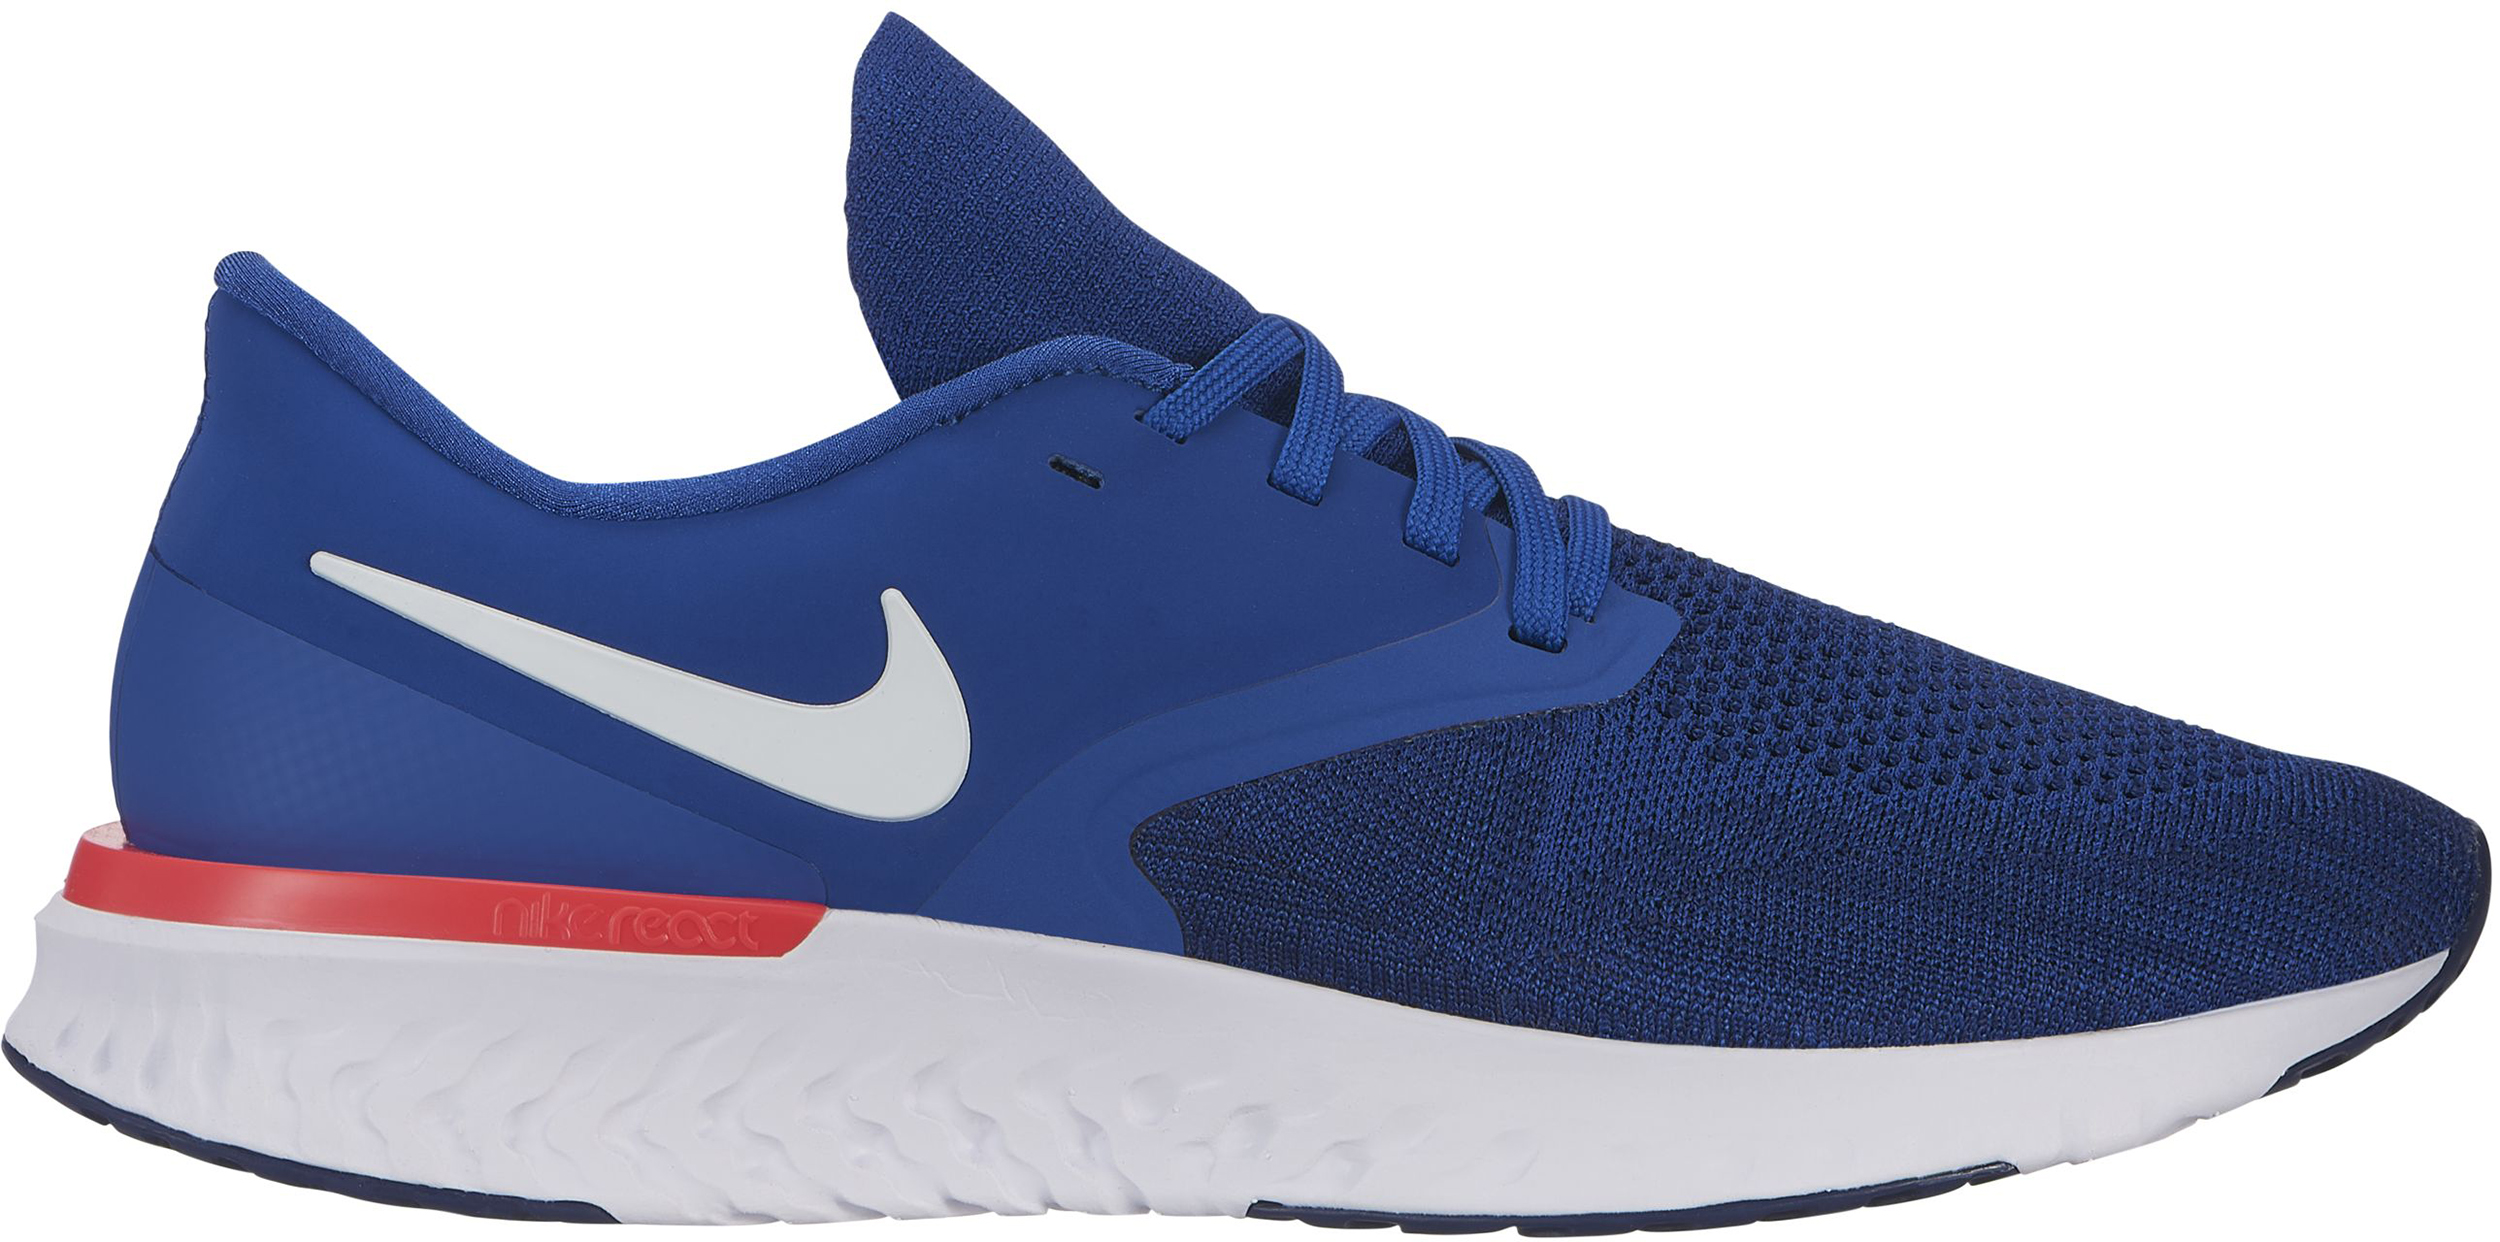 half off 9a2d1 f4831 Nike Running shoes   MEC